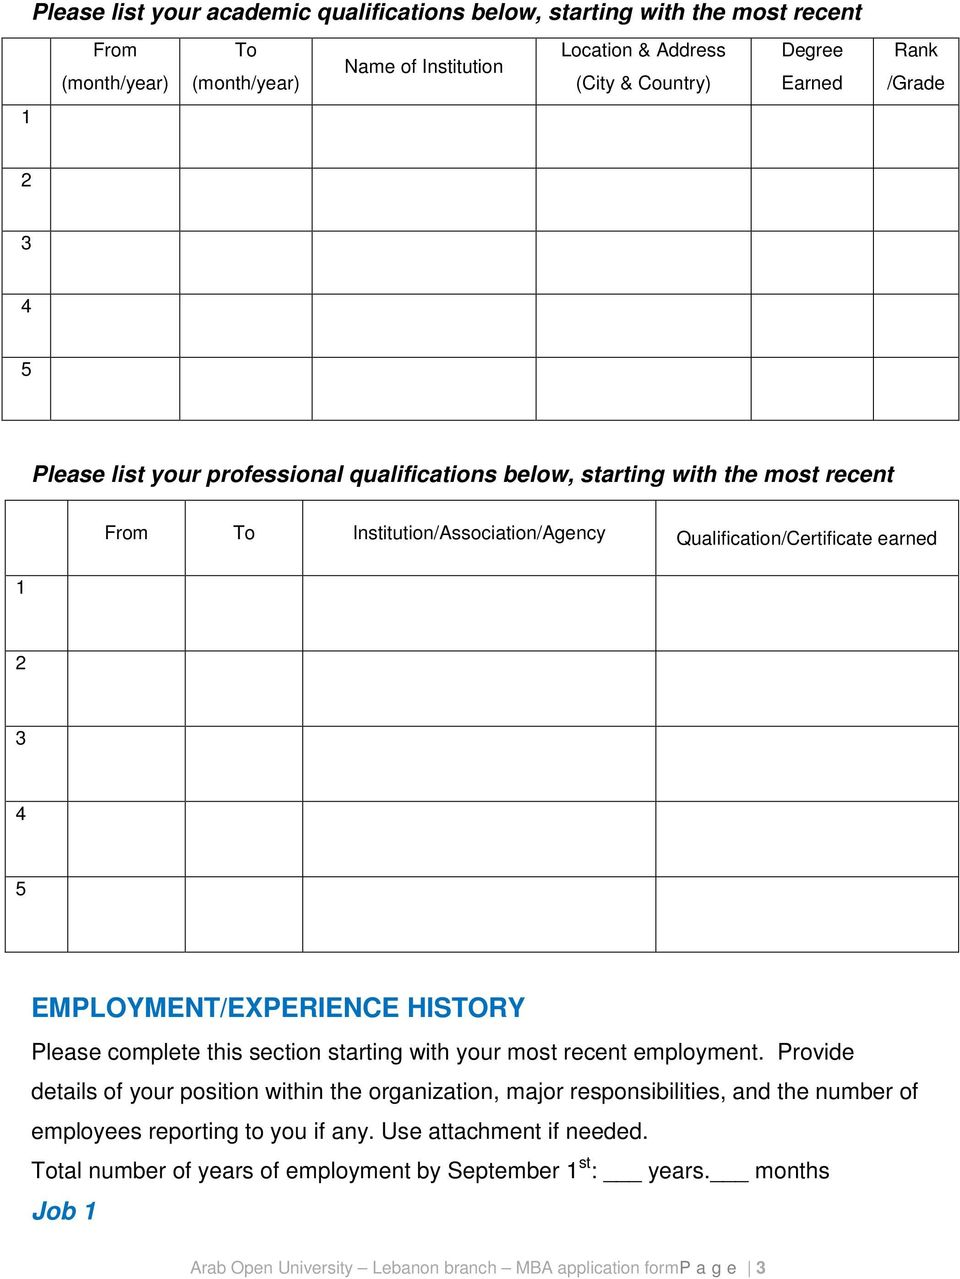 EMPLOYMENT/EXPERIENCE HISTORY Please complete this section starting with your most recent employment.